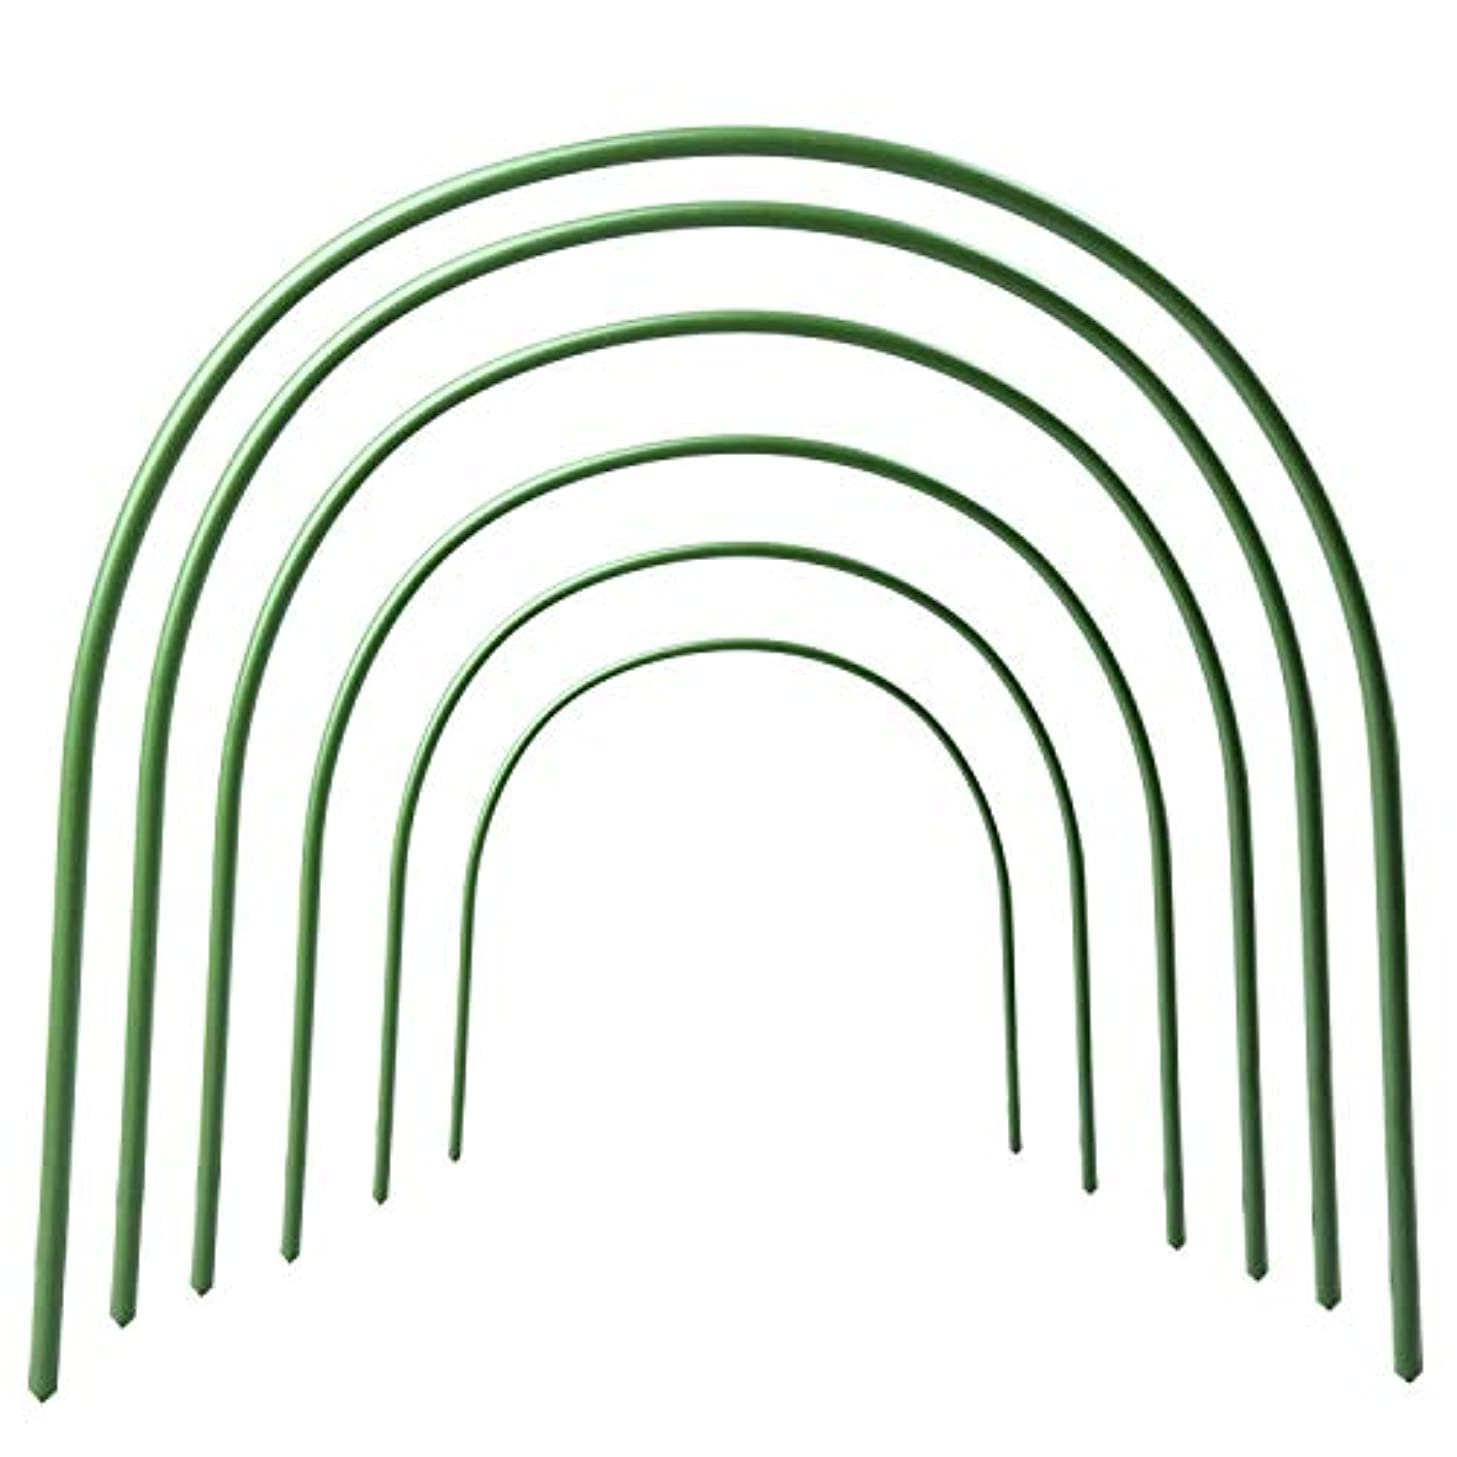 Greenhouse Hoops Rust-free Grow Tunnel 4ft Long Steel with Plastic Coated Support Hoops for Greenhouse, 6 Pack